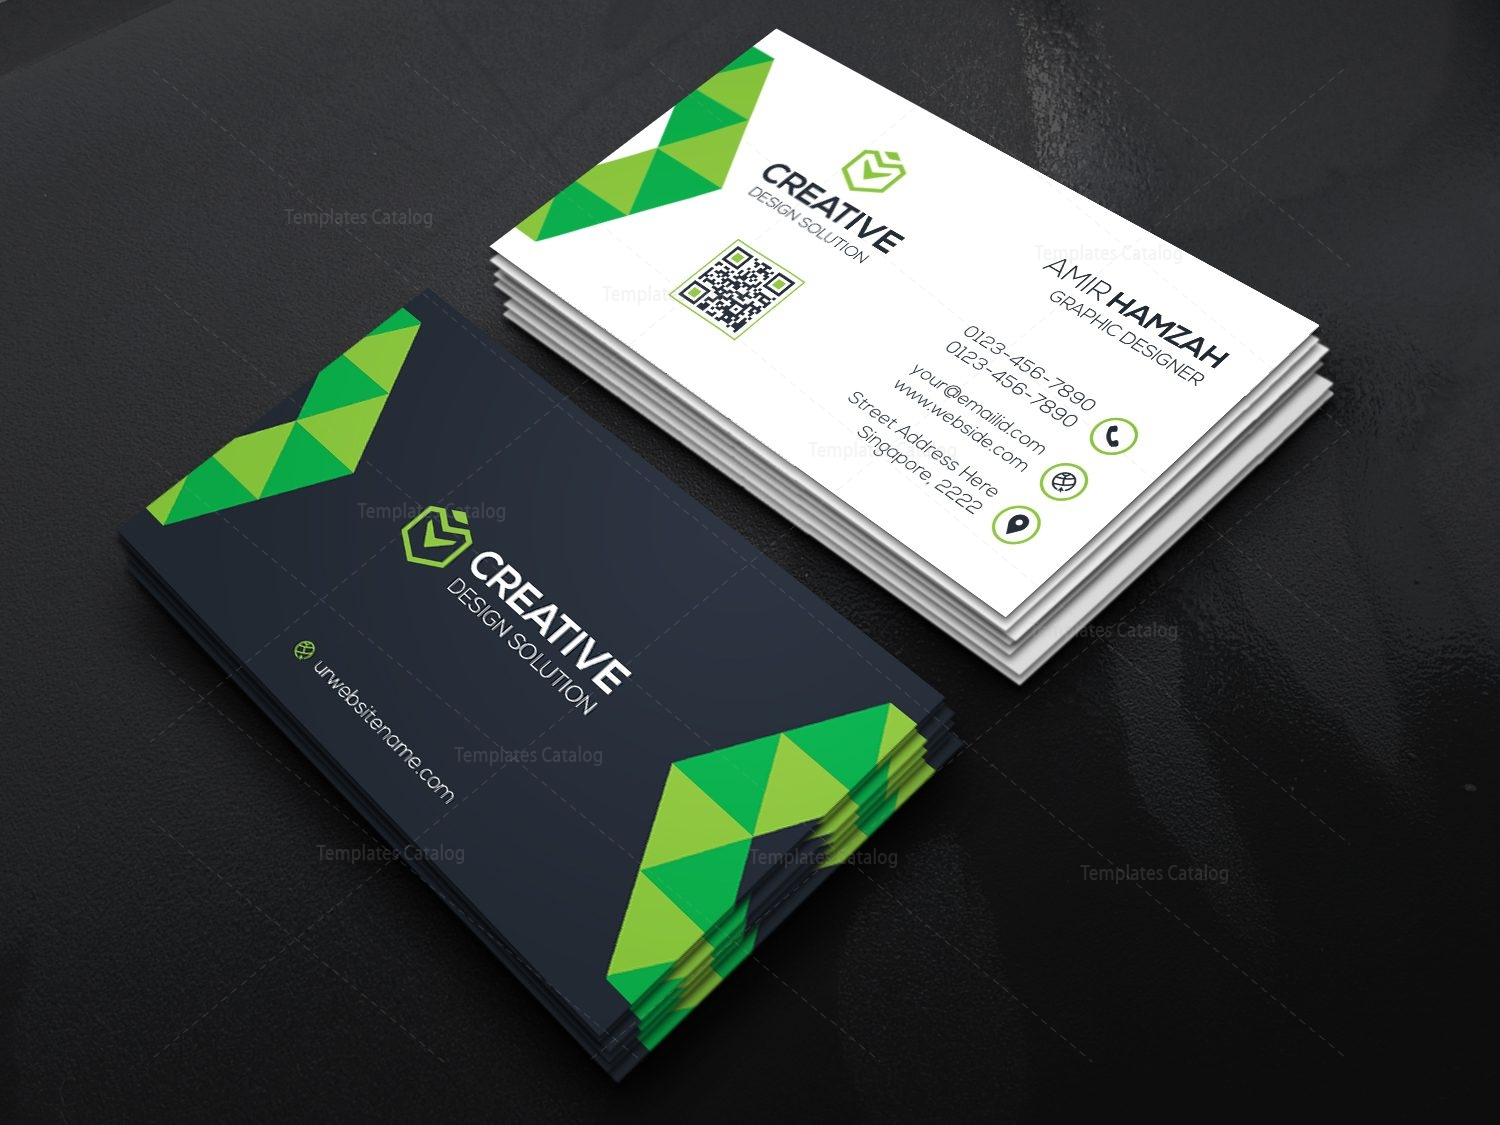 Creative Business Card Design 000469 - Template Catalog